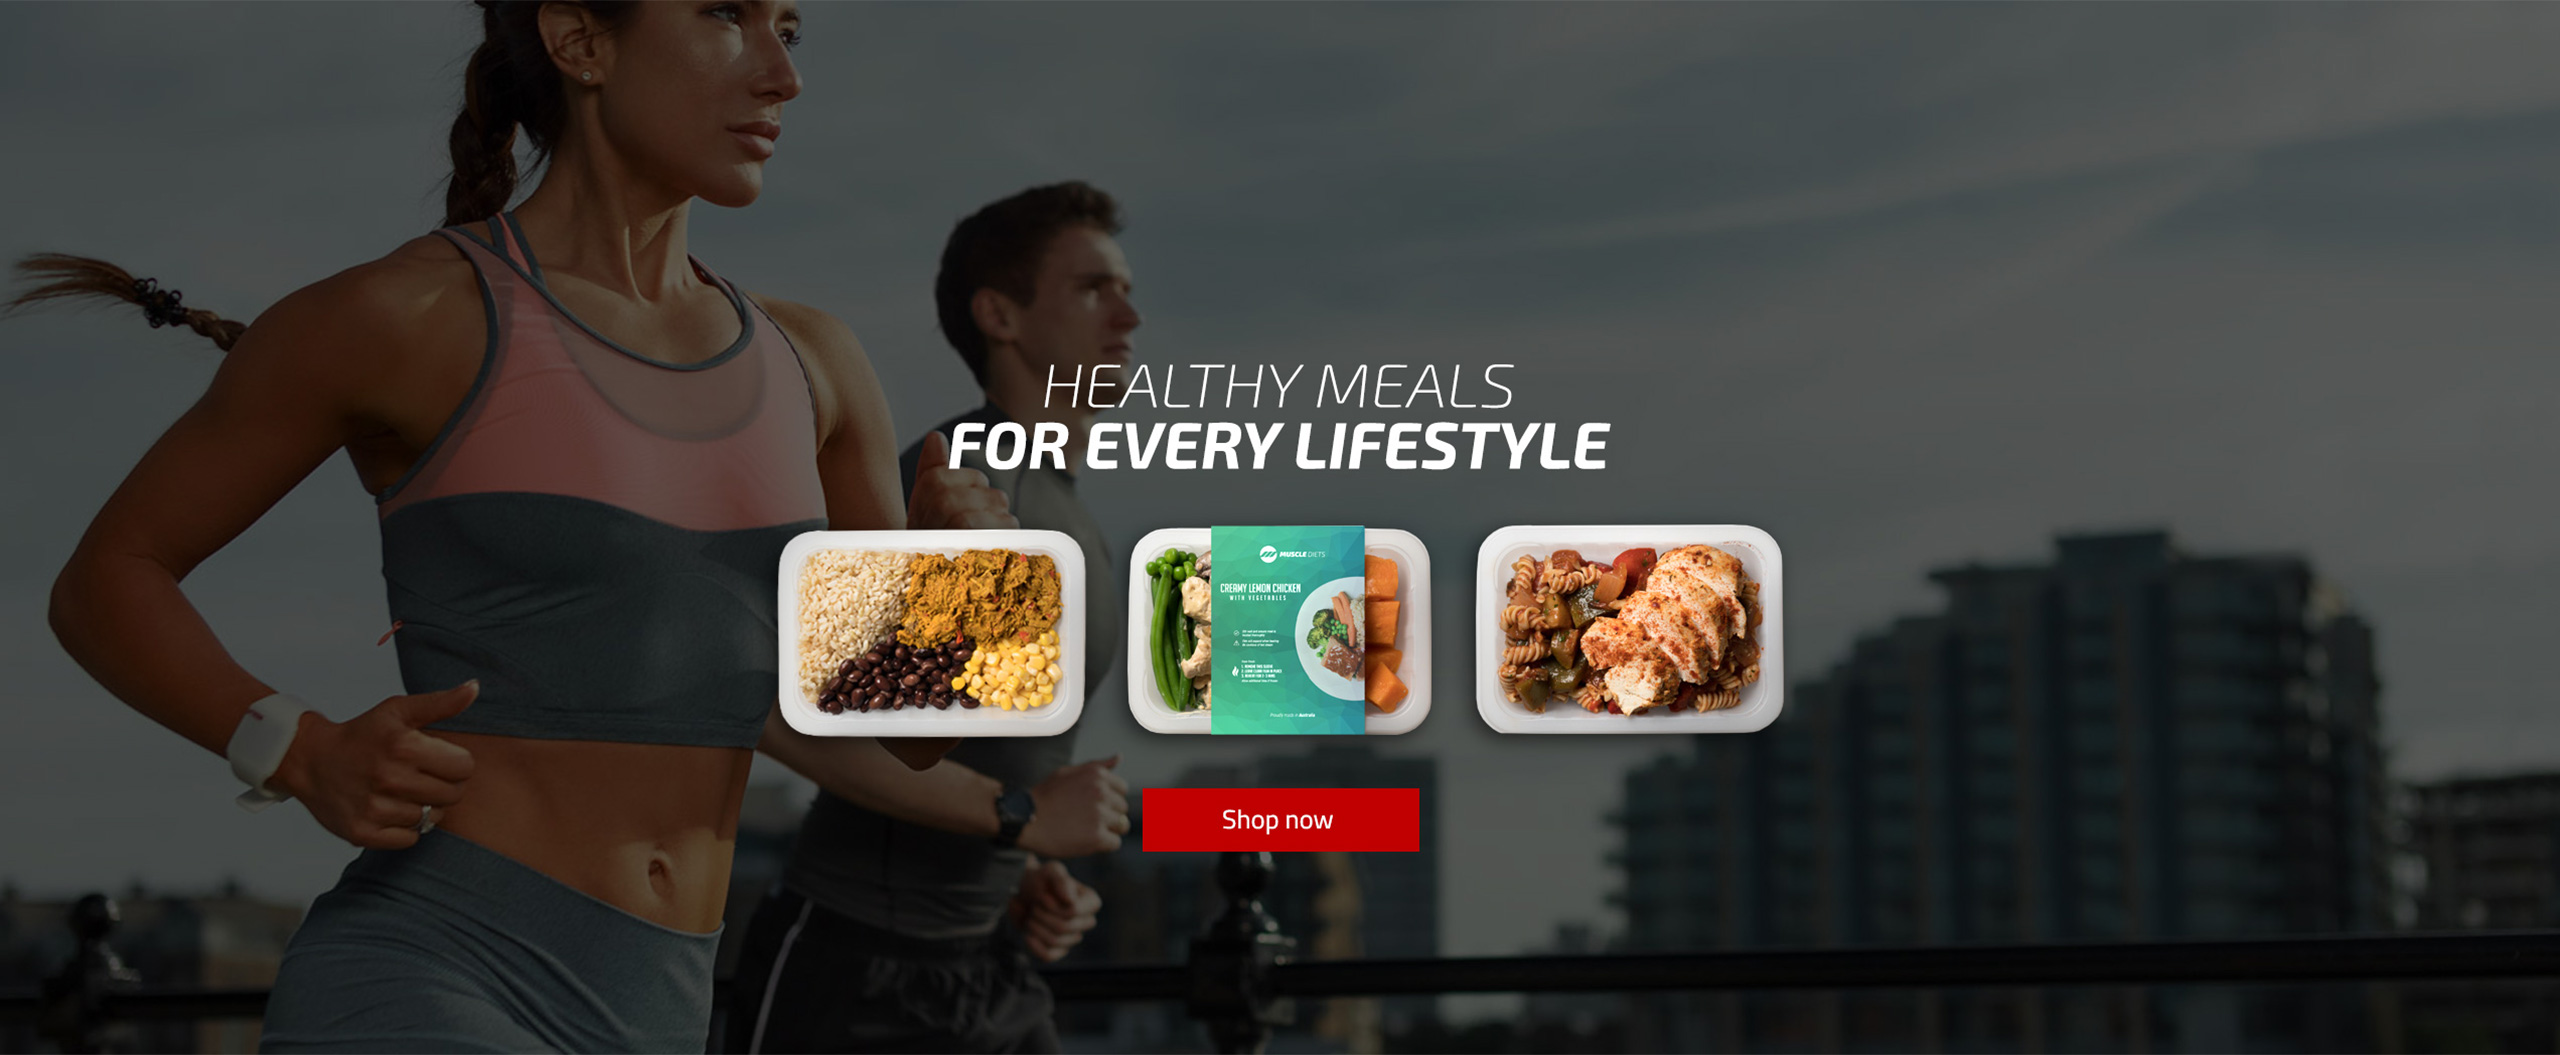 Healty Meals For Every LifeStyle